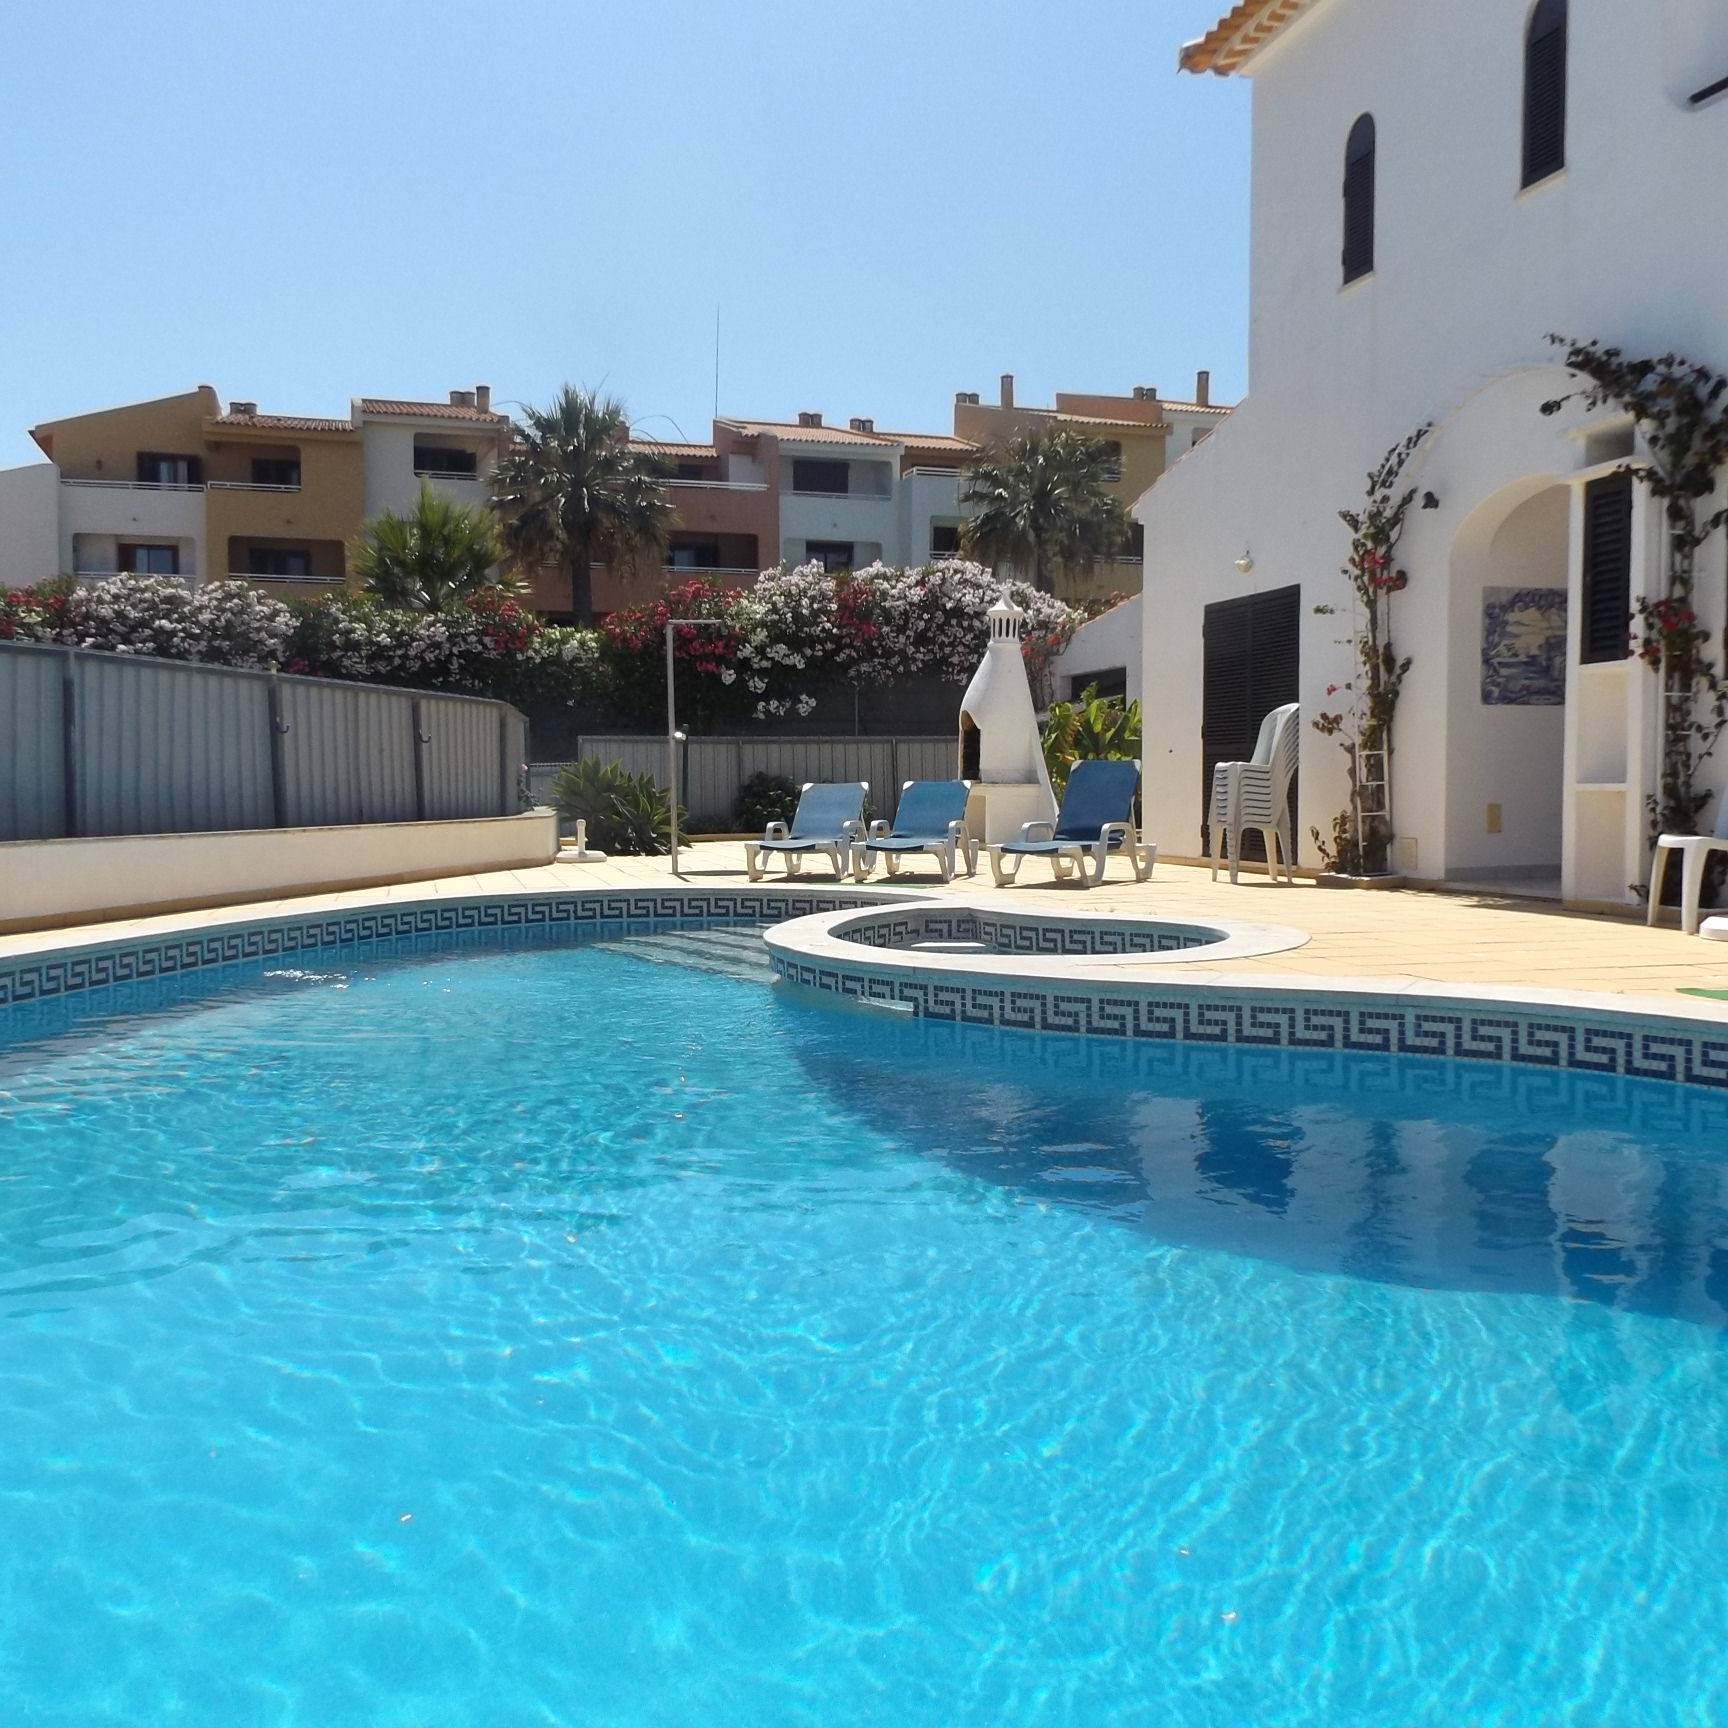 Holidays in Albufeira (Algarve) for up to 10 people